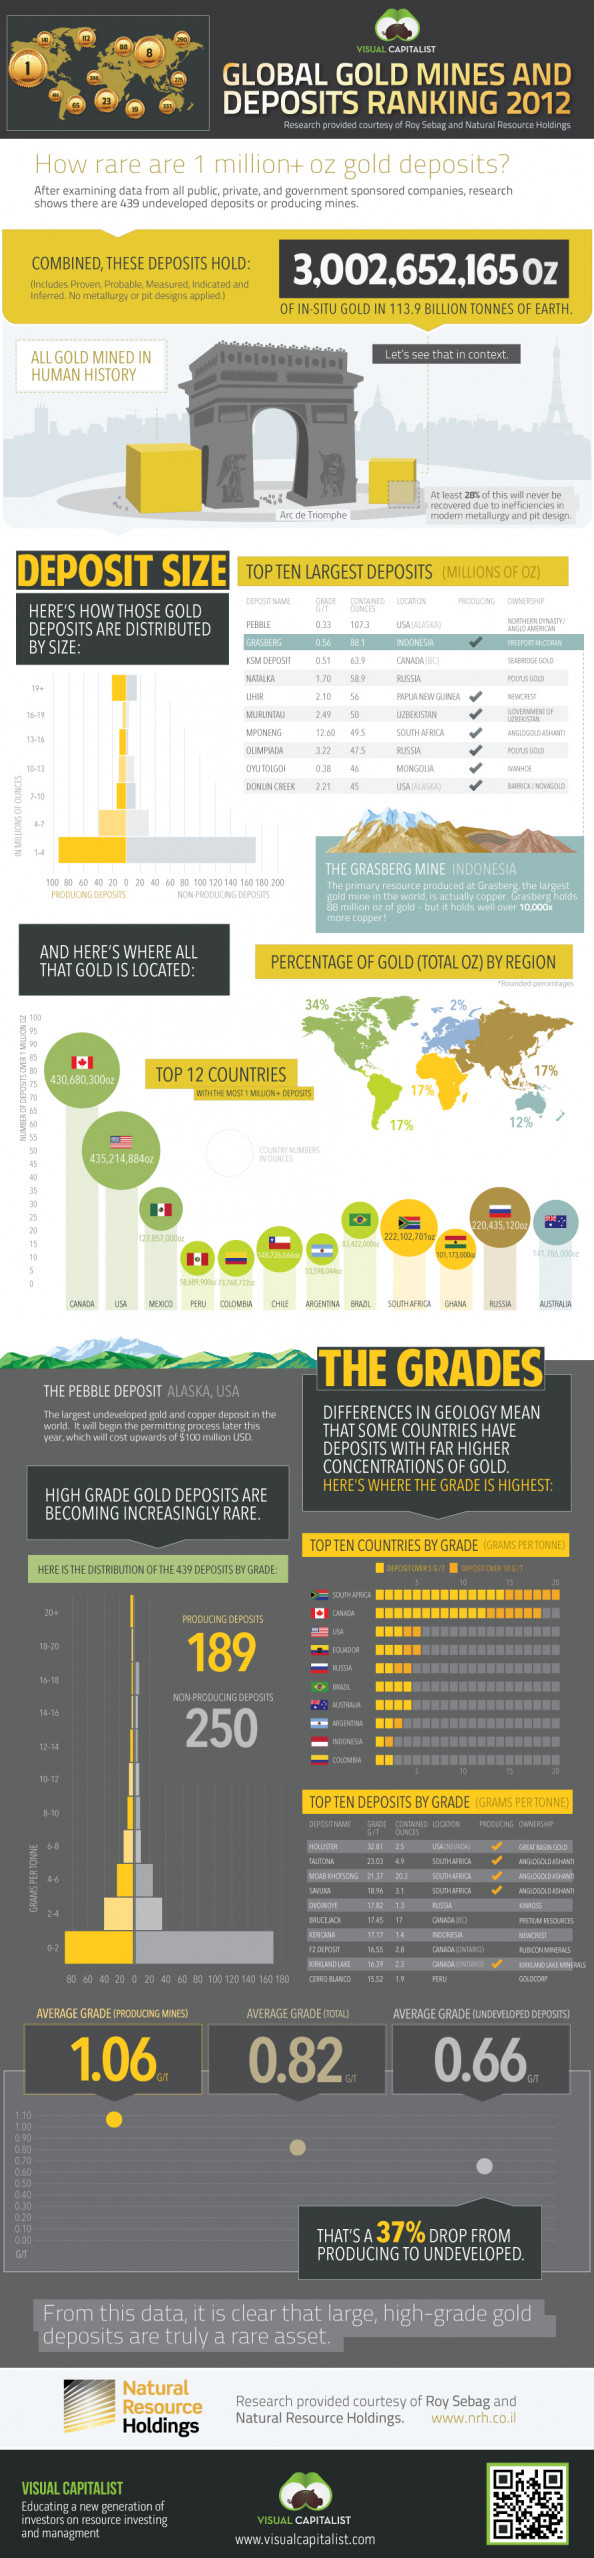 Global Gold Mines and Deposits Rankings 2012 Infographic